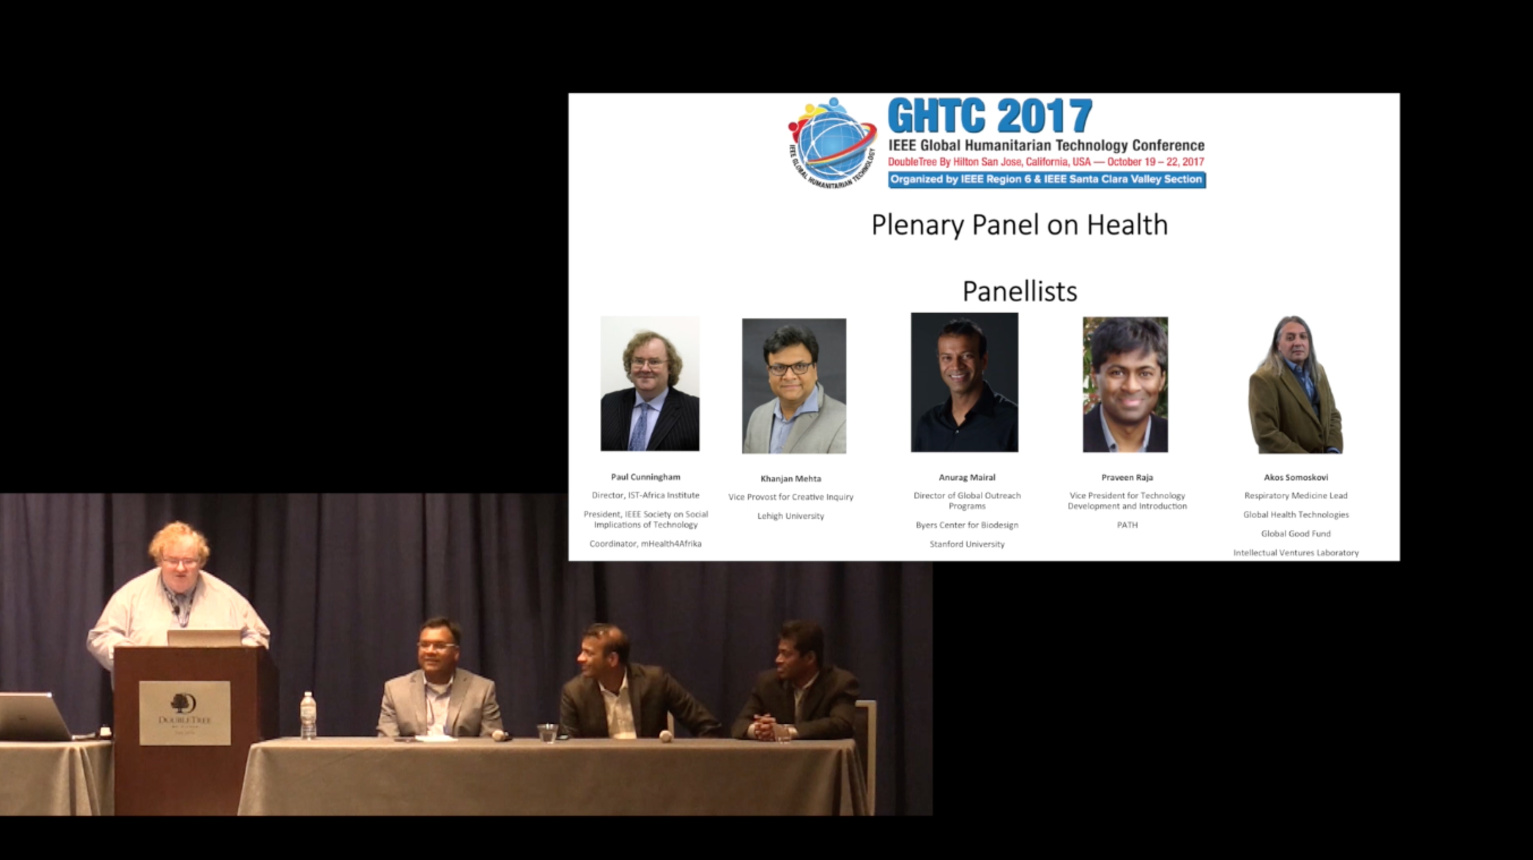 Healthcare Panel at the Global Humanitarian Technology Conference, GHTC 2017